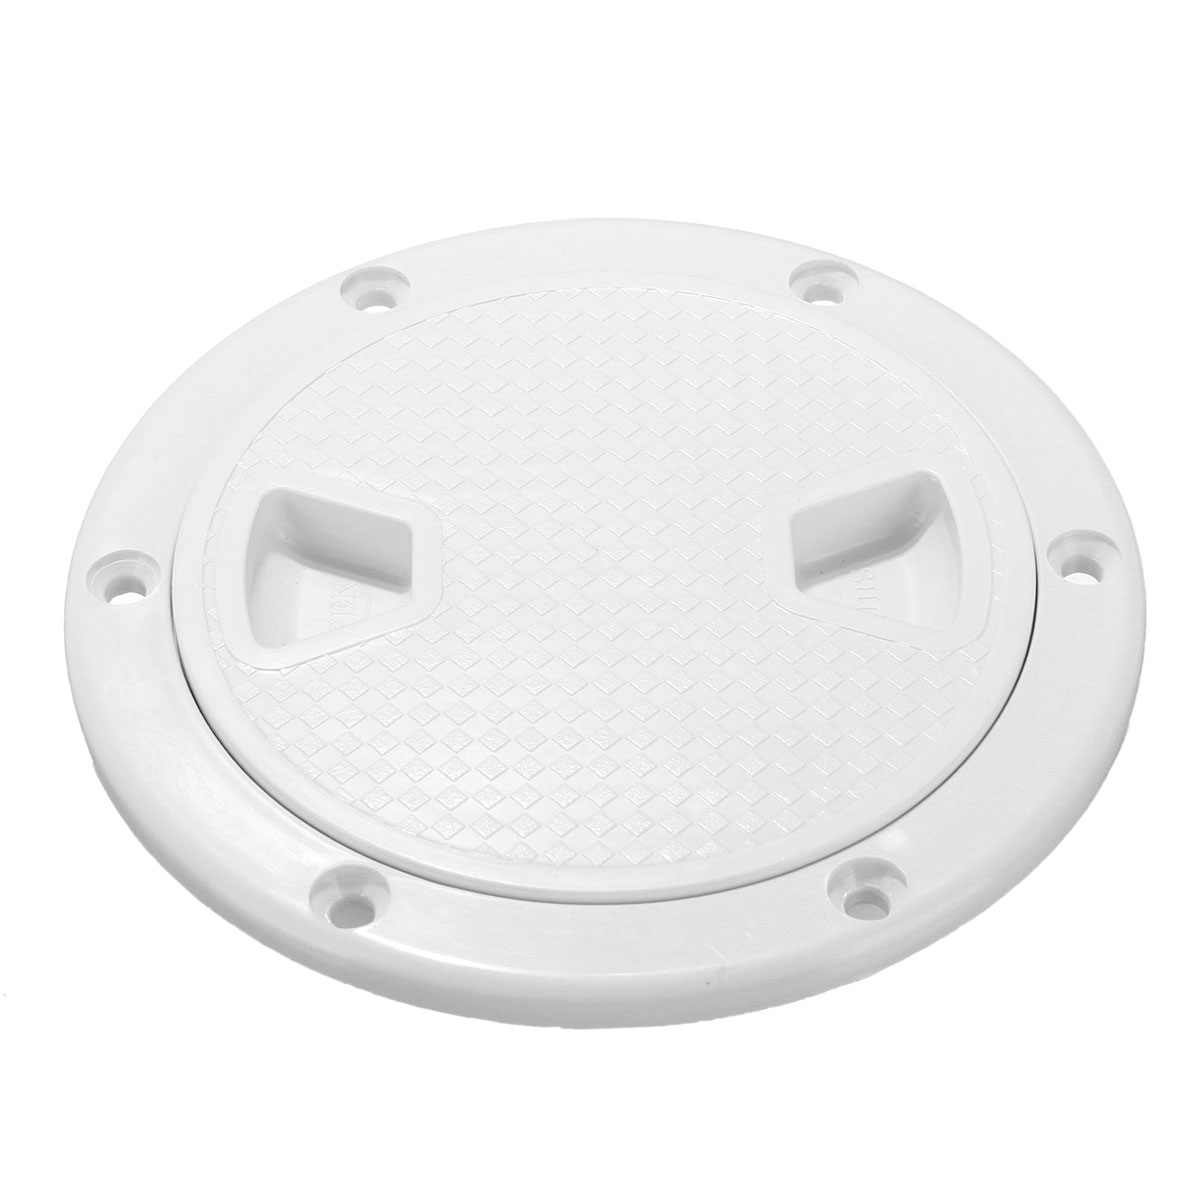 4//6//8 Inch Hatch Round Plastic Cover Deck Plate Non Slip Inspection For Boat